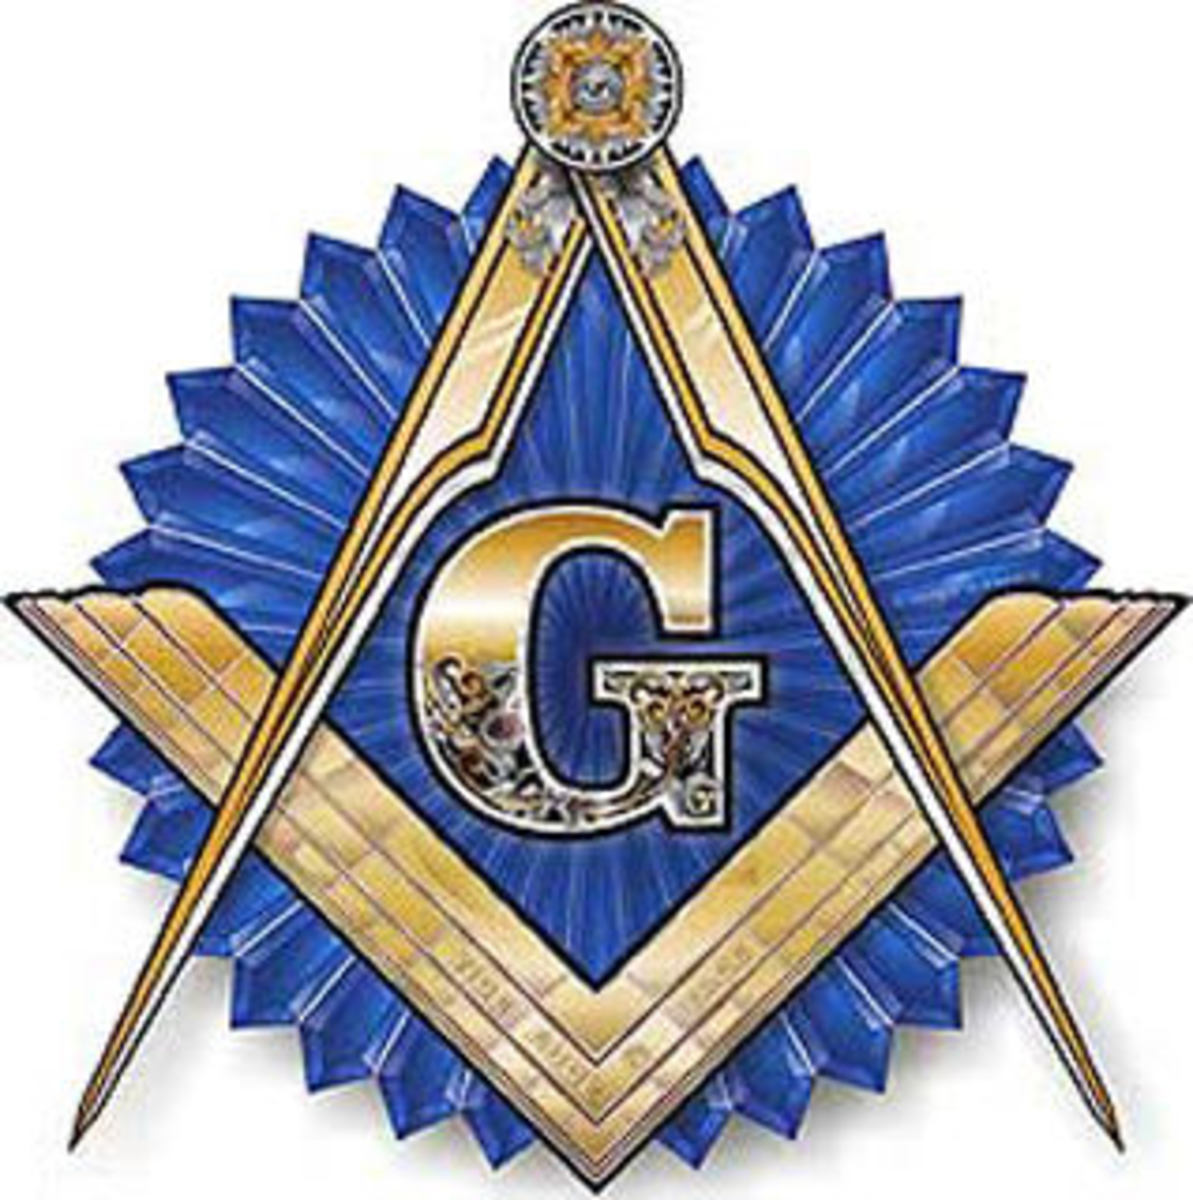 history-of-the-freemasons-and-the-illuminati-lies-and-disinformation-told-by-these-groups